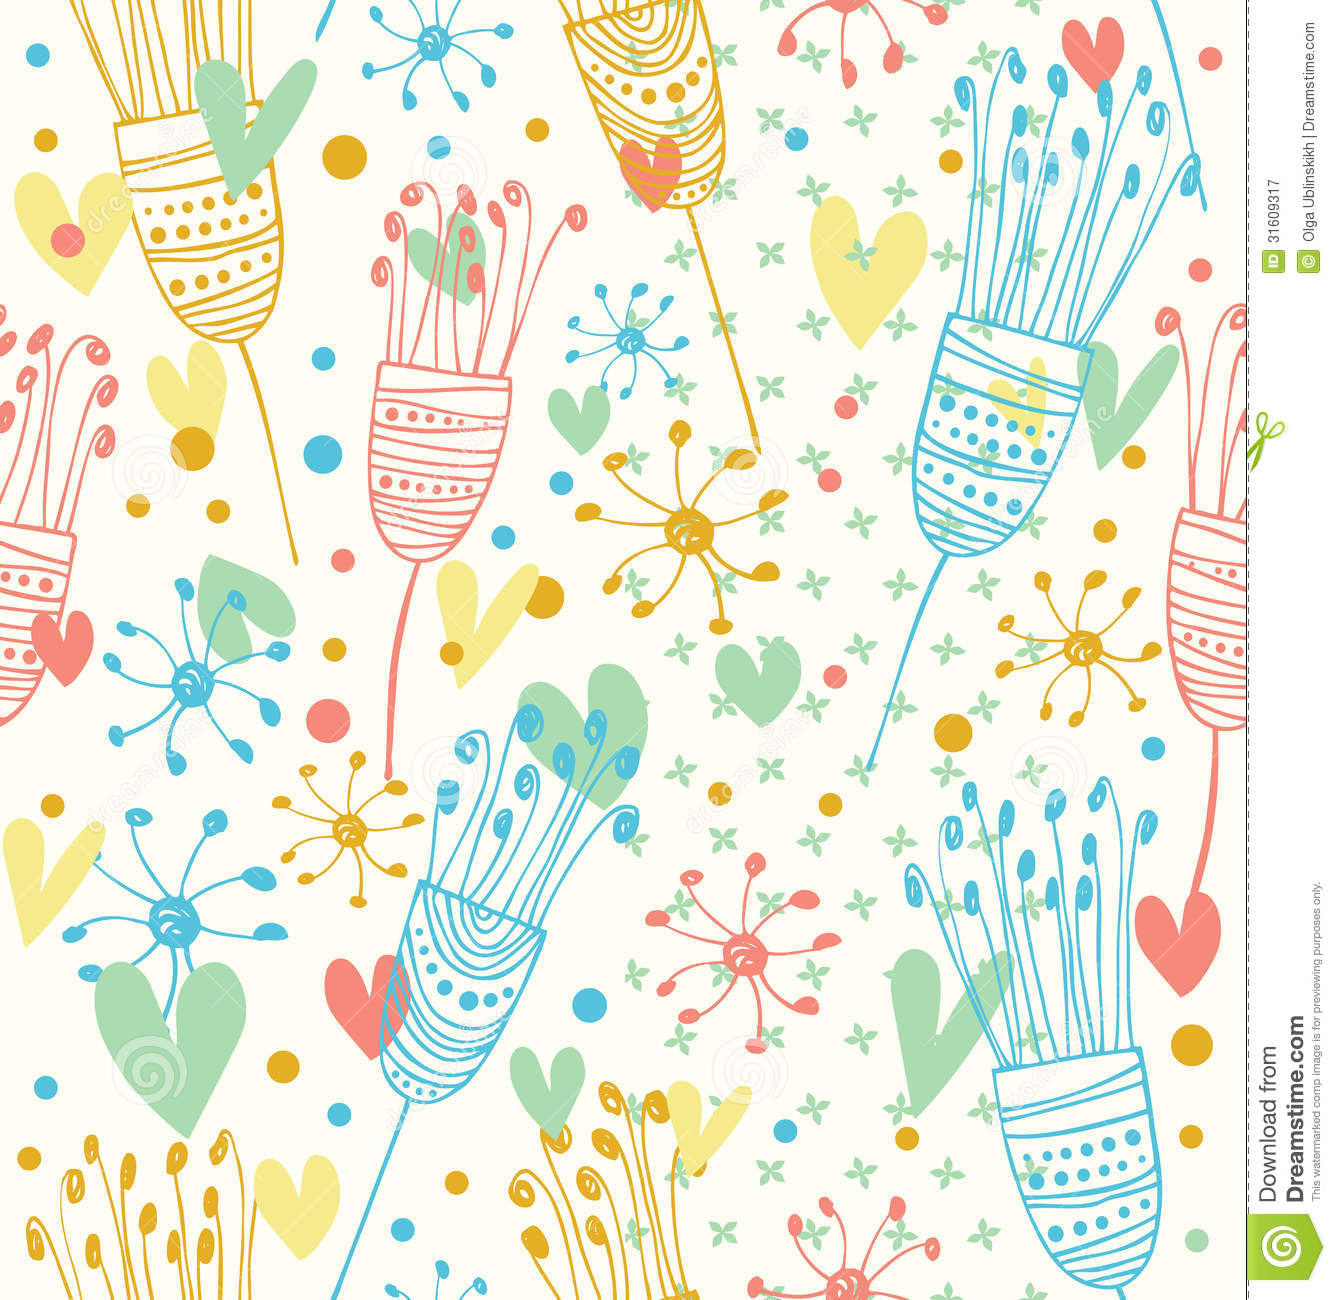 Seamless Light Floral Pattern Cute Background With Flowers Decorative Doodle Texture For Prints Textile Crafts Wallpapers Stock Illustration Illustration Of Lace Cartoon 31609317